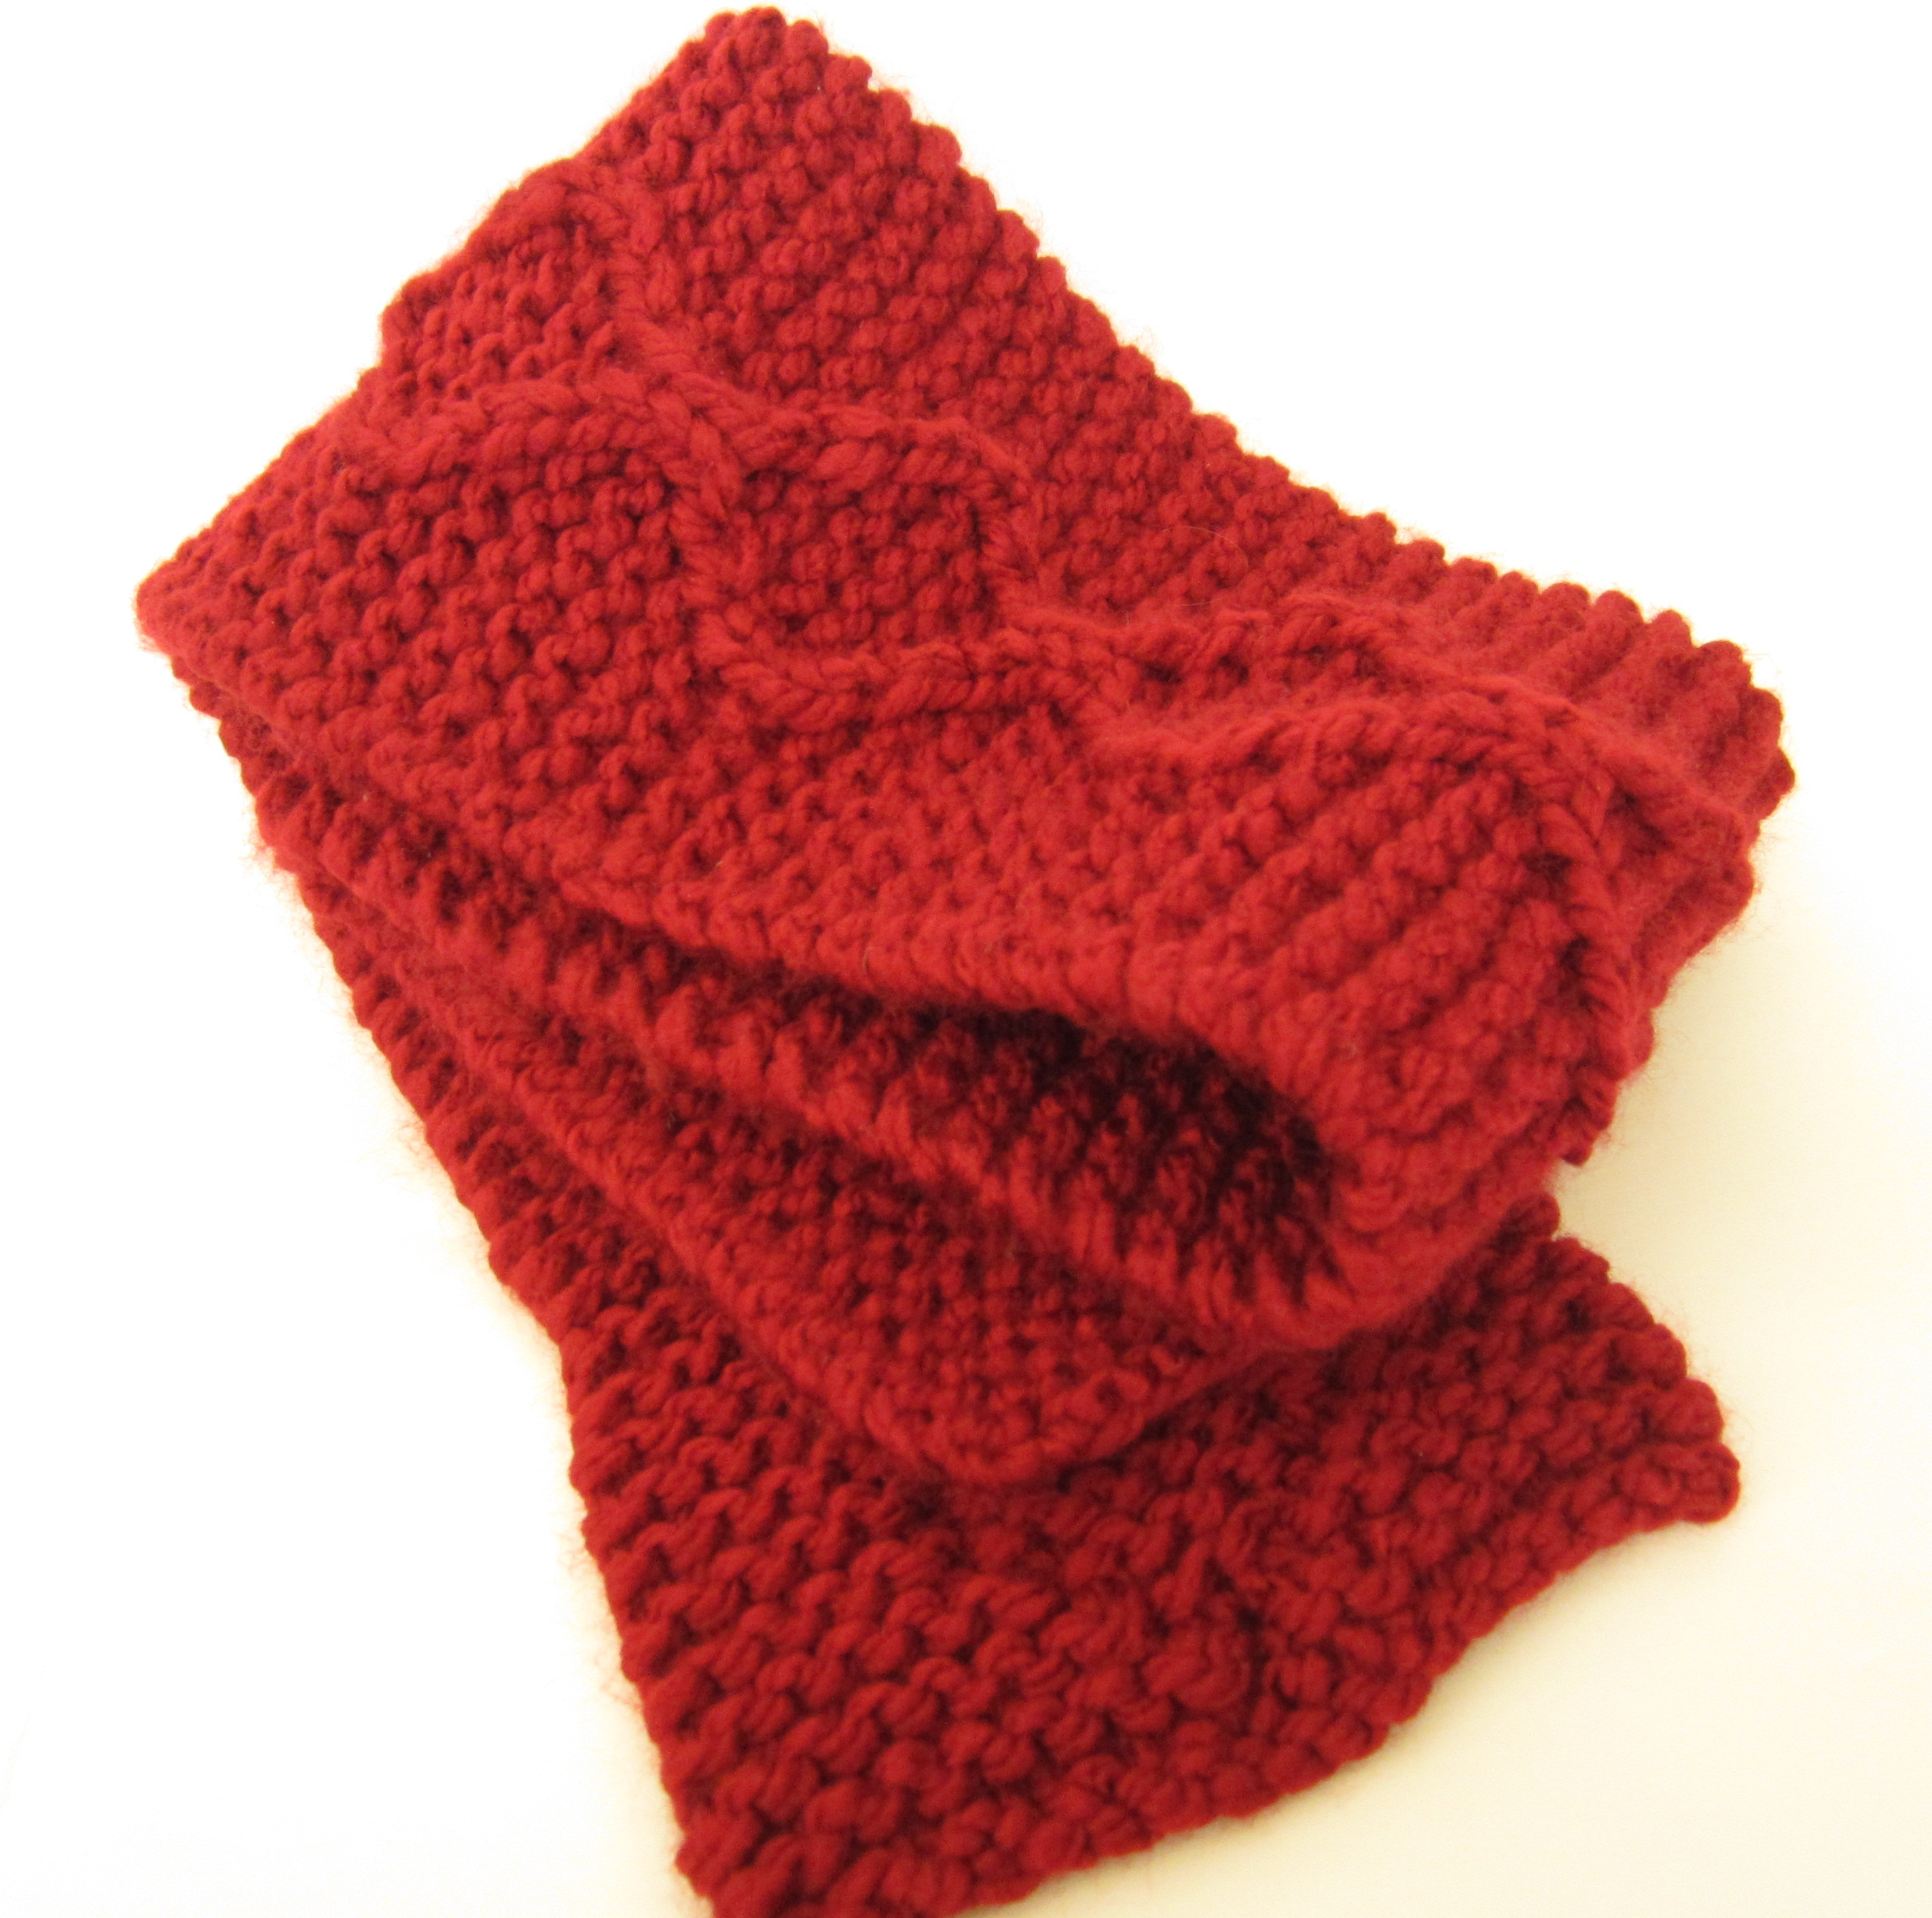 Free Cable Knitting Patterns For Scarves : Quick Free Knitting Patterns